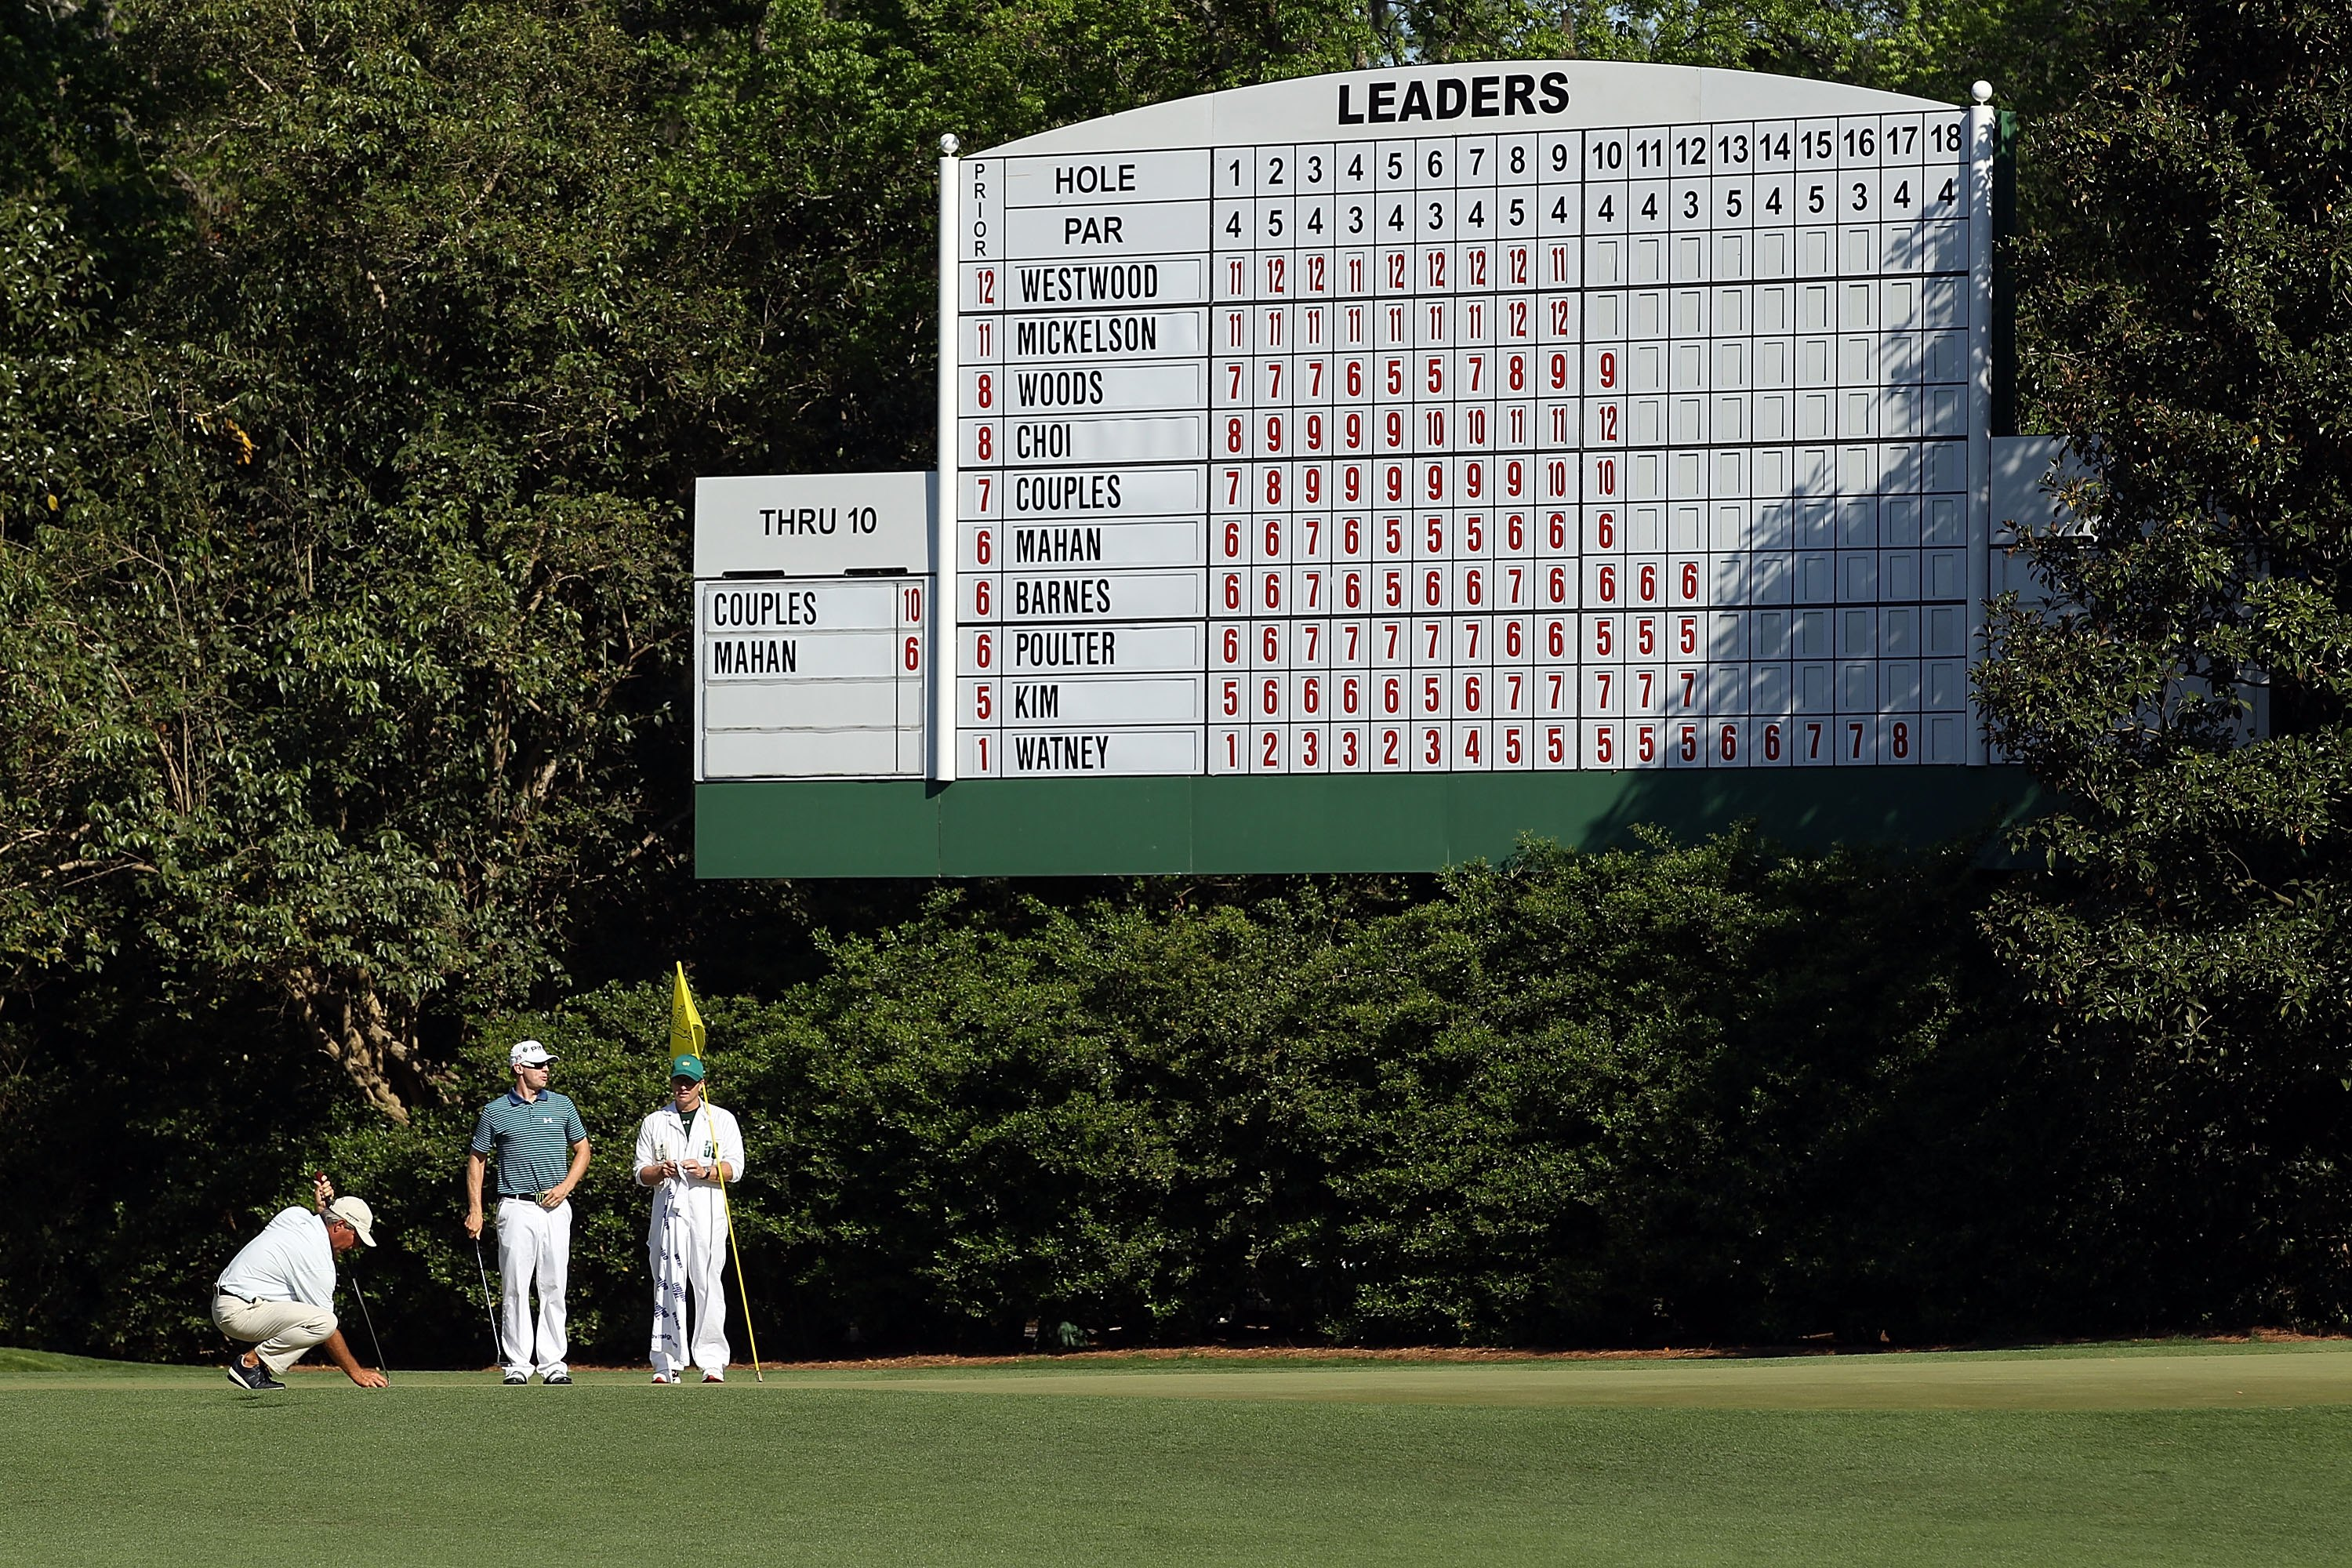 AUGUSTA, GA - APRIL 11:  Fred Couples and Hunter Mahan during the final round of the 2010 Masters Tournament at Augusta National Golf Club on April 11, 2010 in Augusta, Georgia.  (Photo by Streeter Lecka/Getty Images for Golf Week)